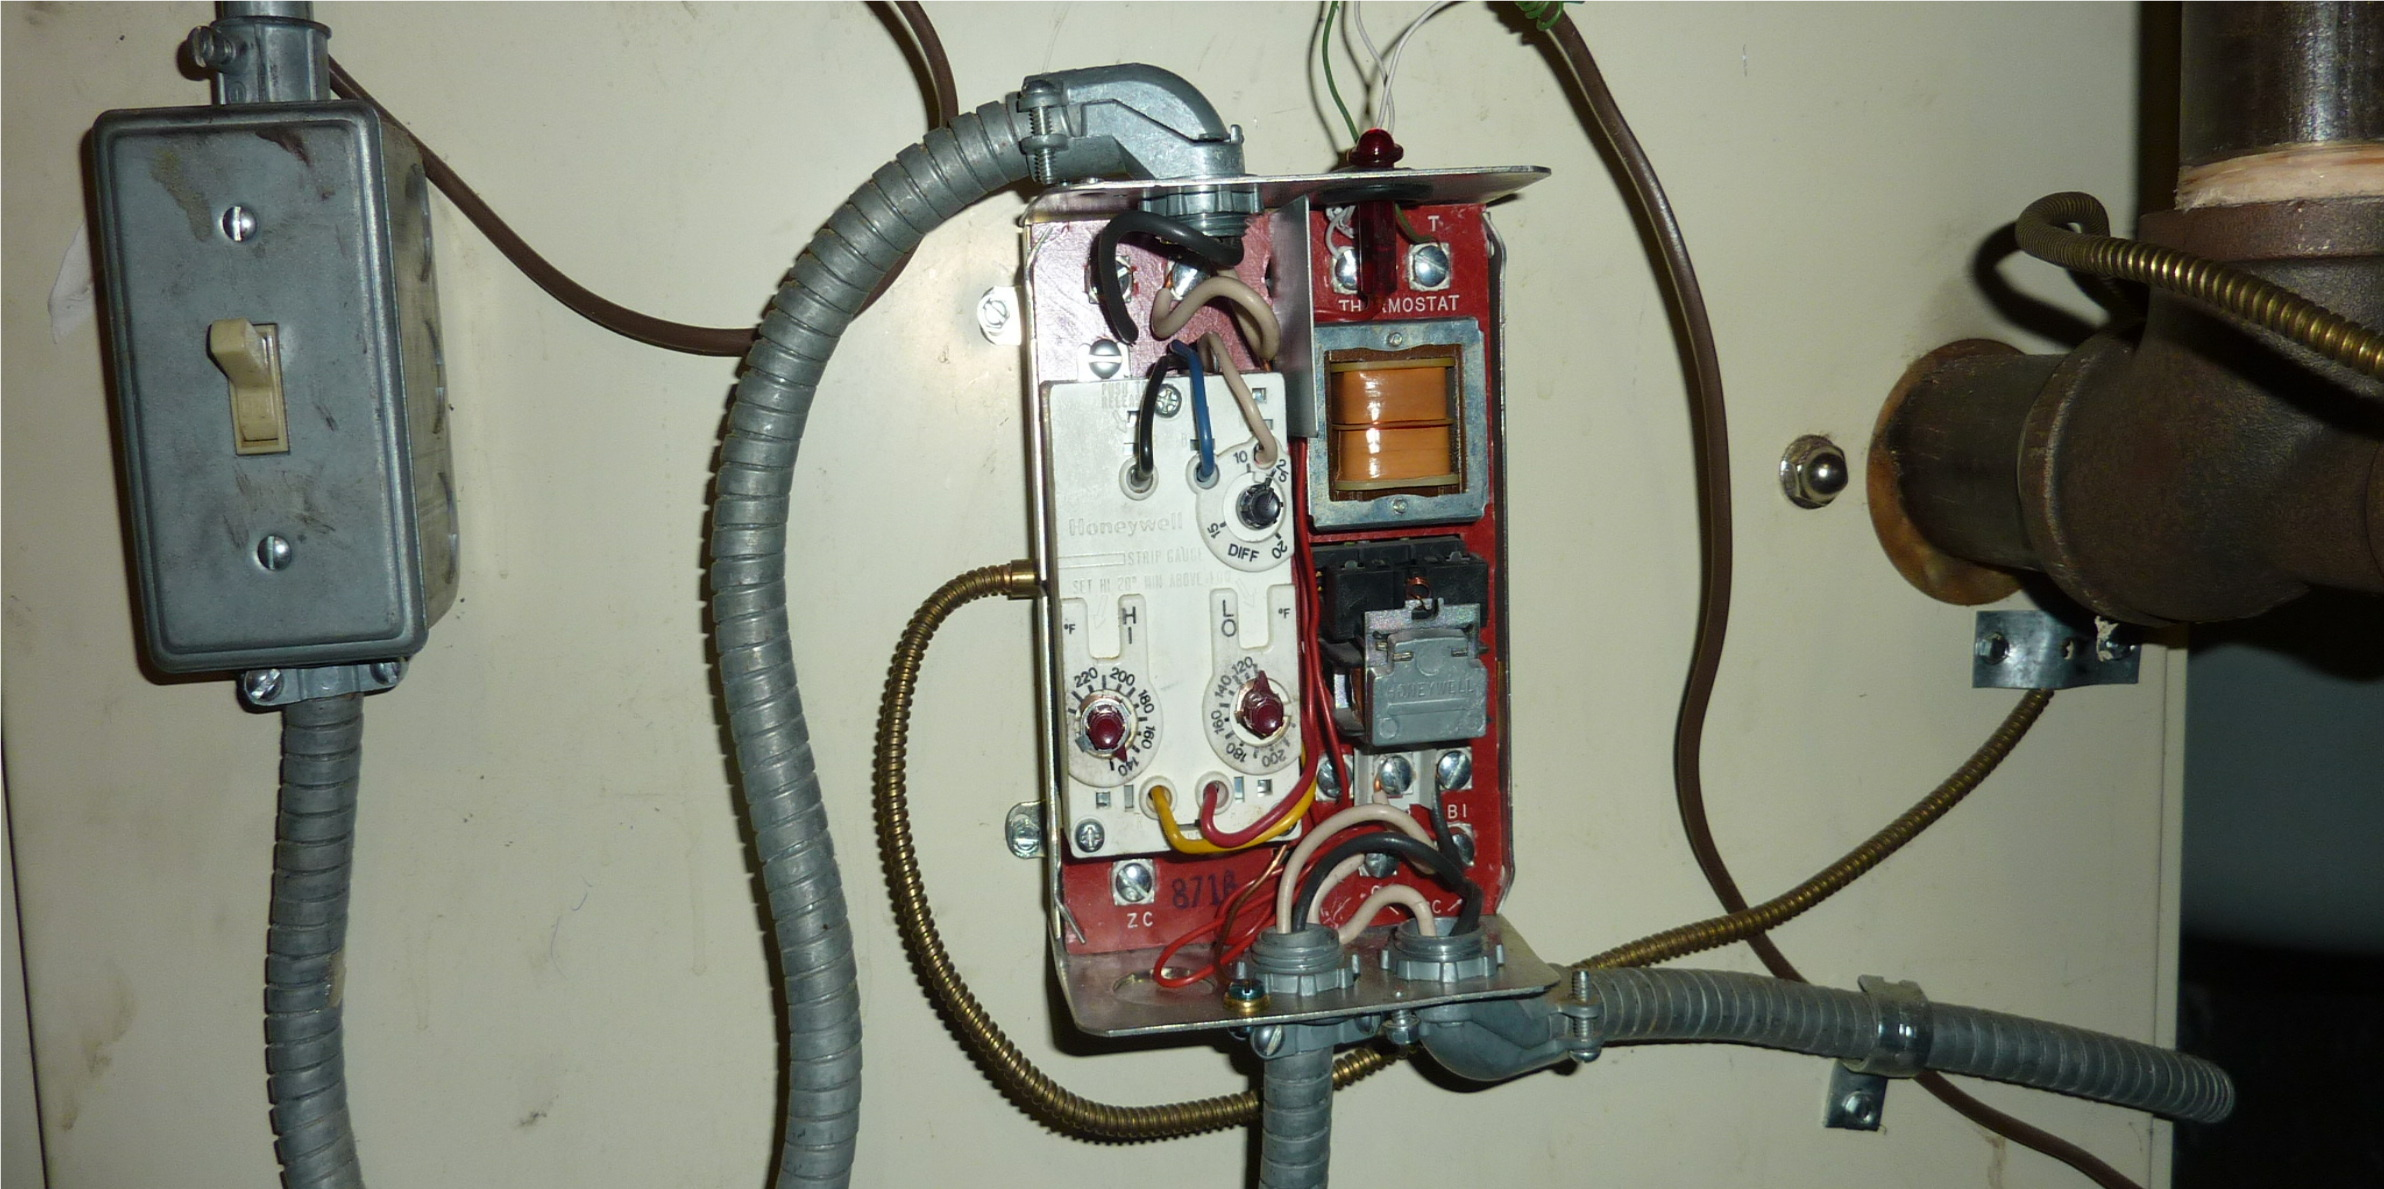 Honeywell R8184g4009 Wiring Diagram on honeywell oil burner primary control wiring diagram